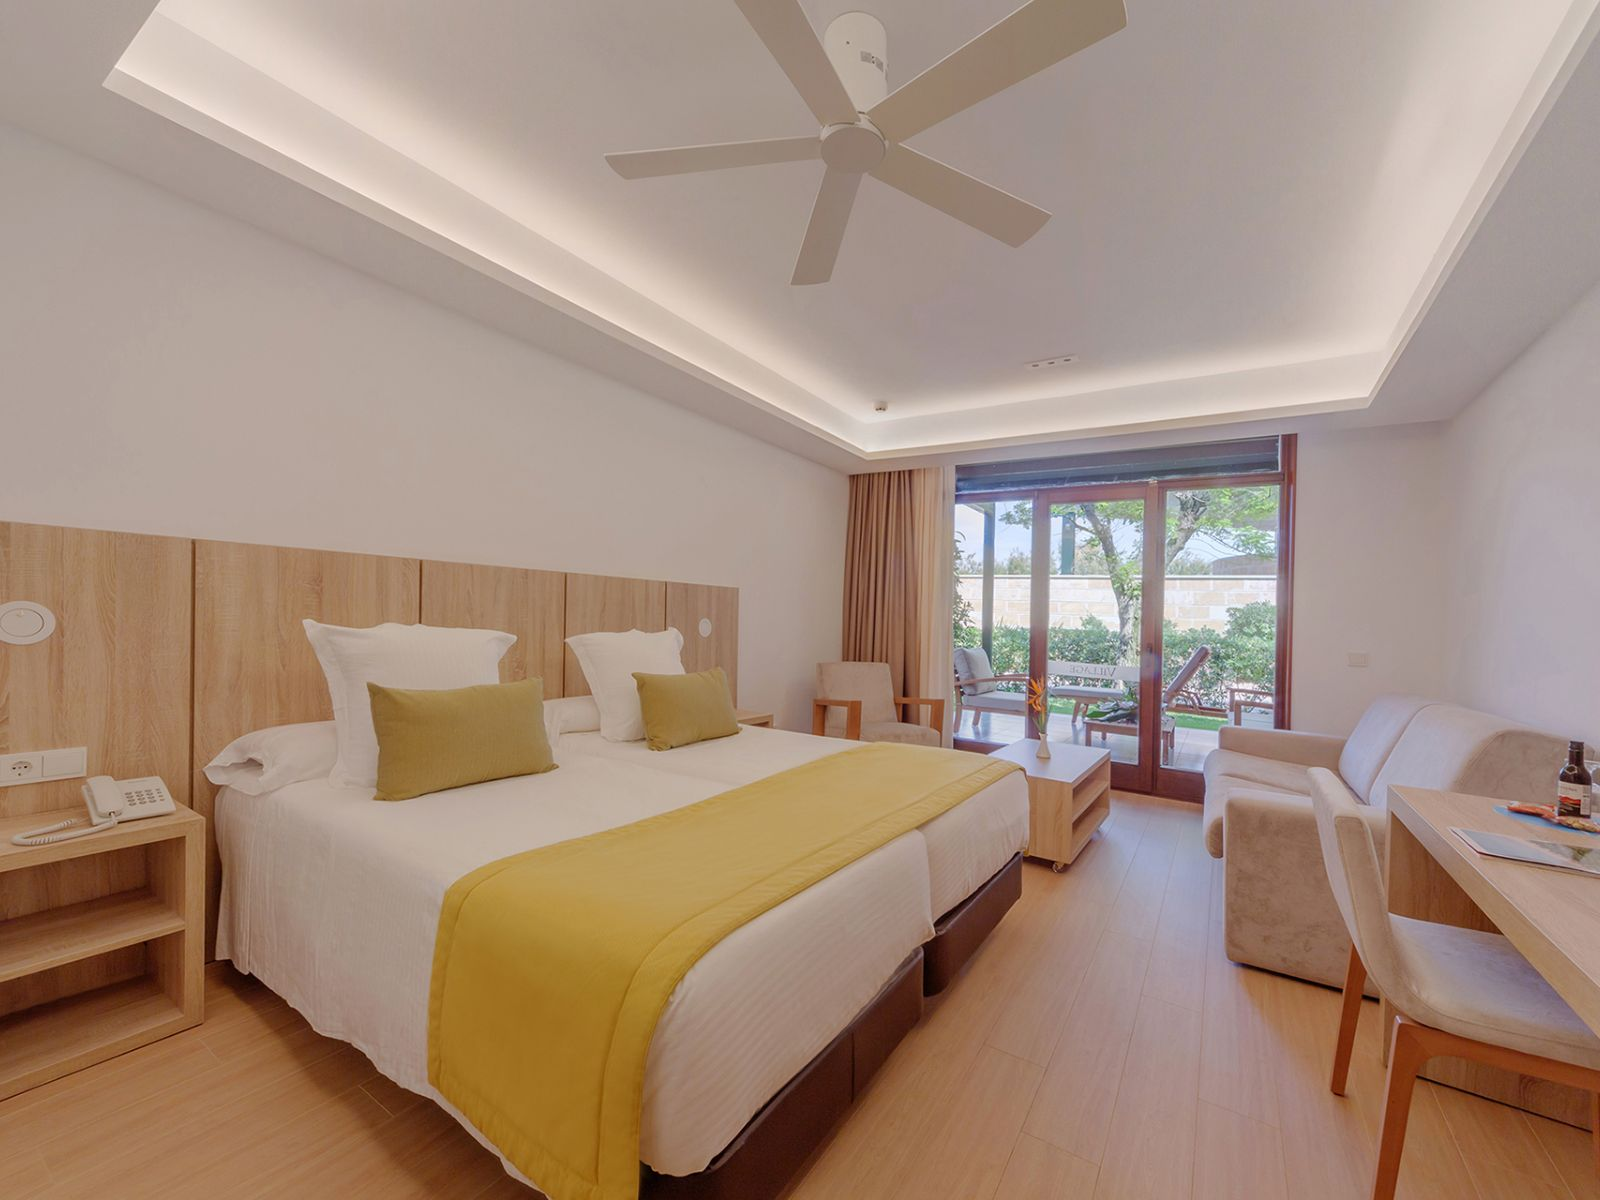 Habitación Village Plus | PortBlue Club Pollentia by PortBlue Hotel Group